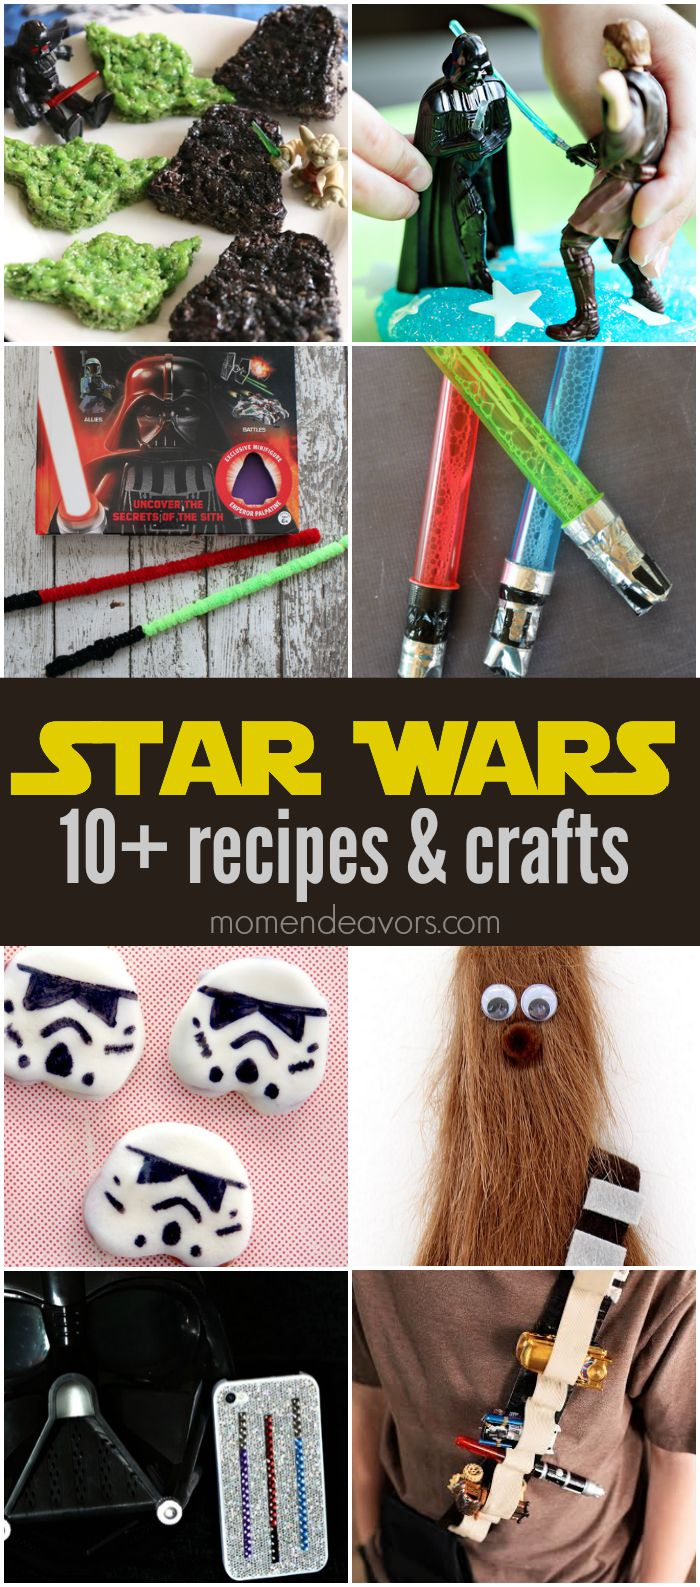 Star Wars Recipes and Crafts